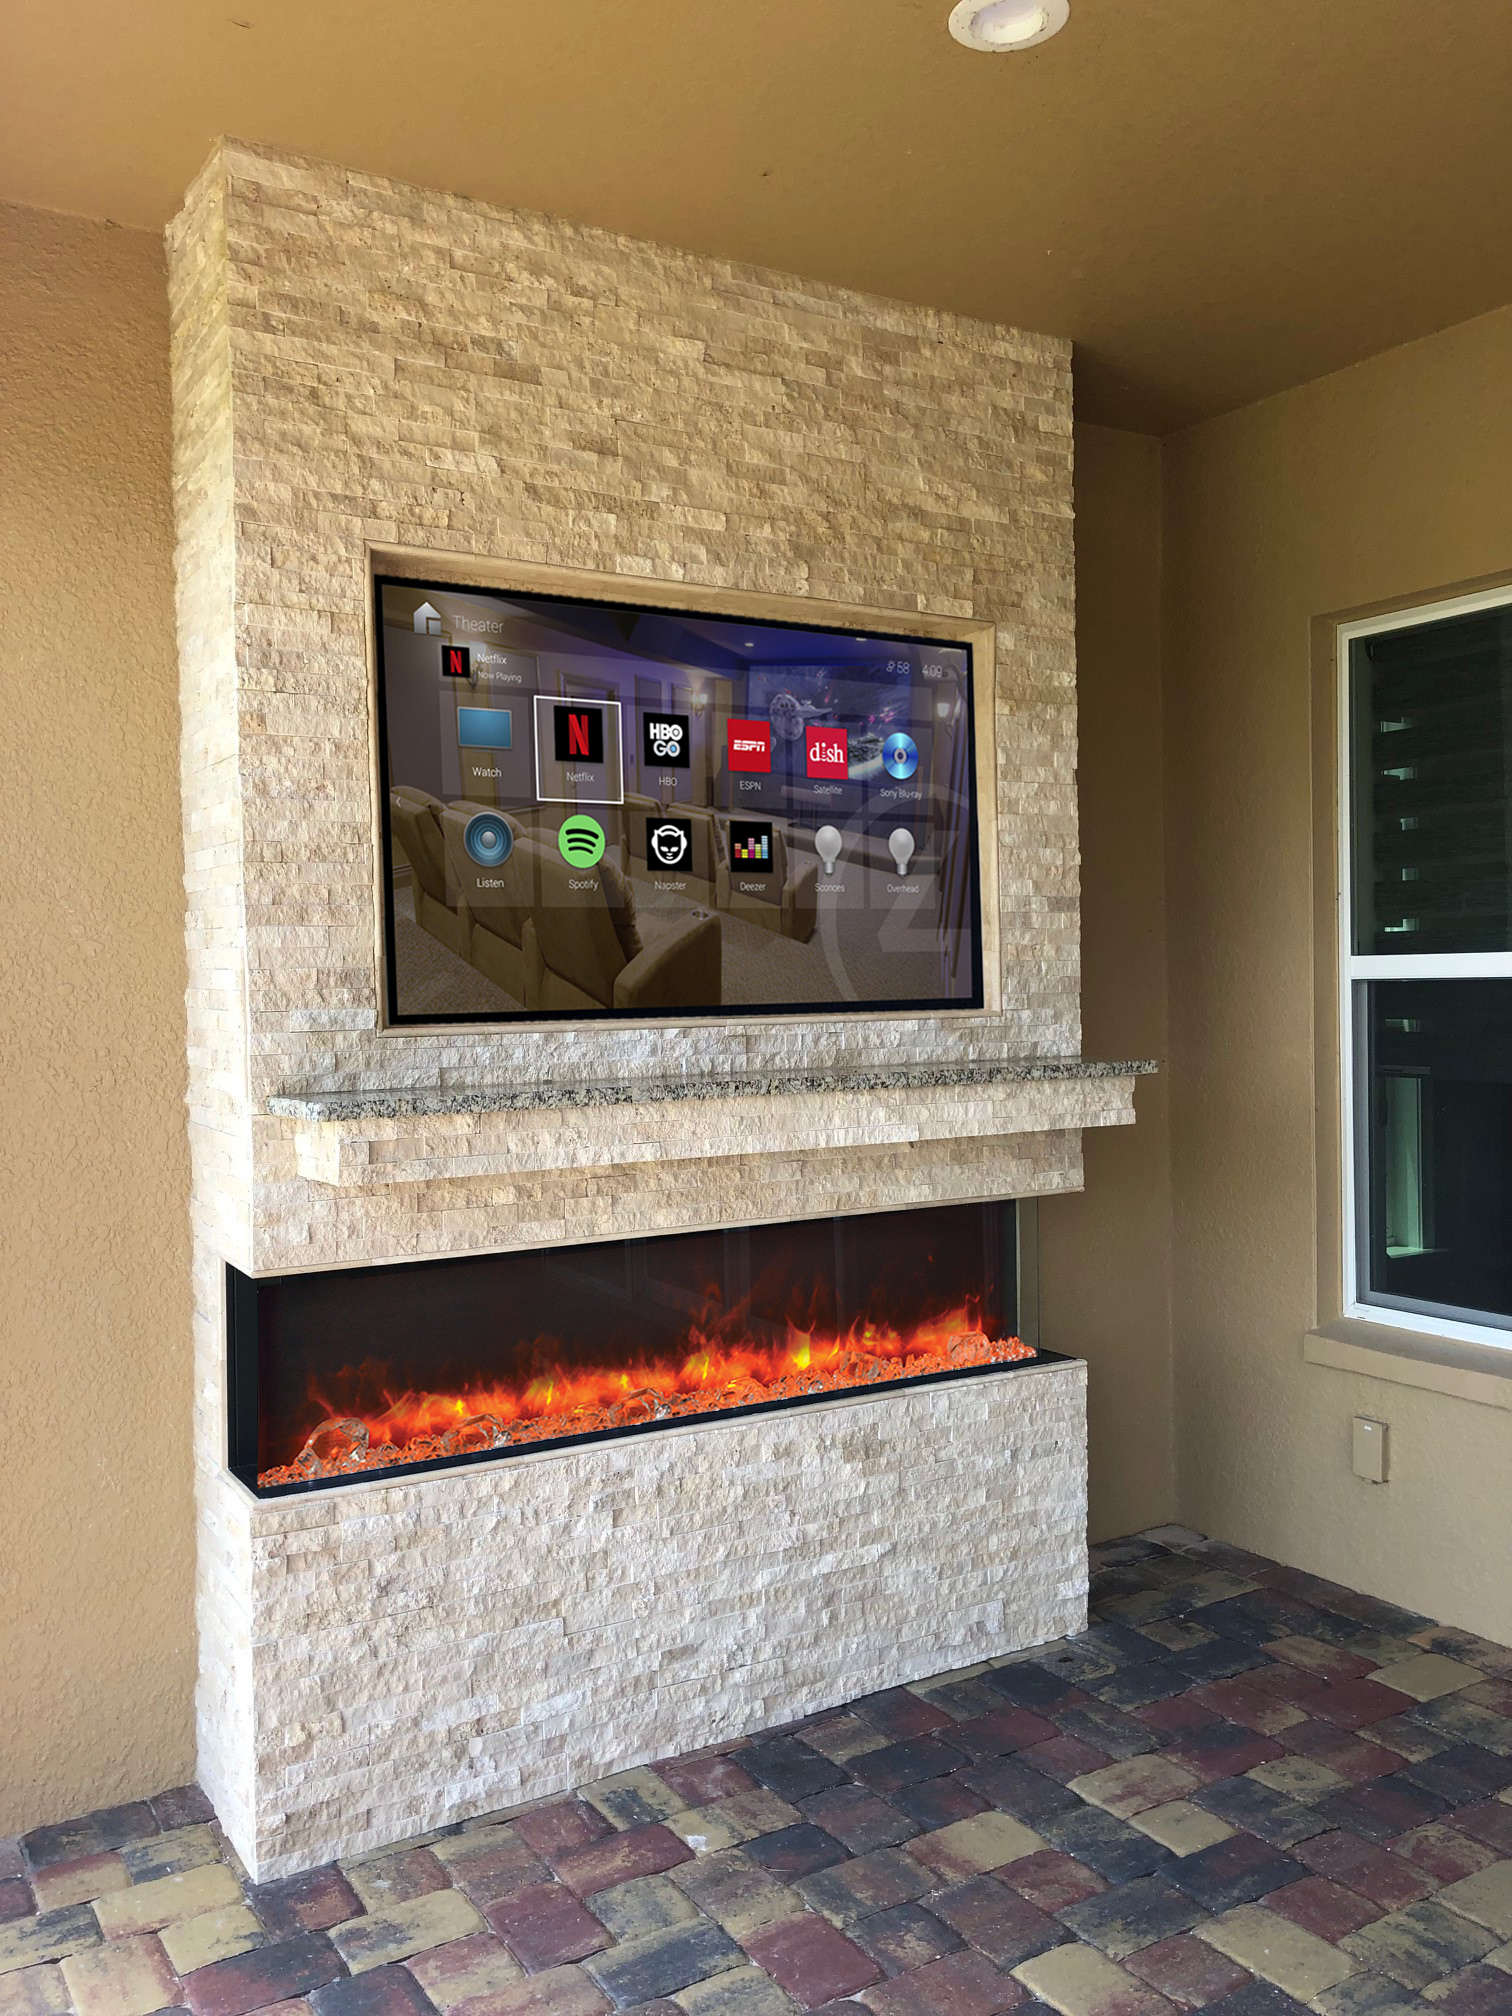 Rock Wall, TV and Fireplace Combo - Synergy Outdoor Living on Synergy Outdoor Living id=27357